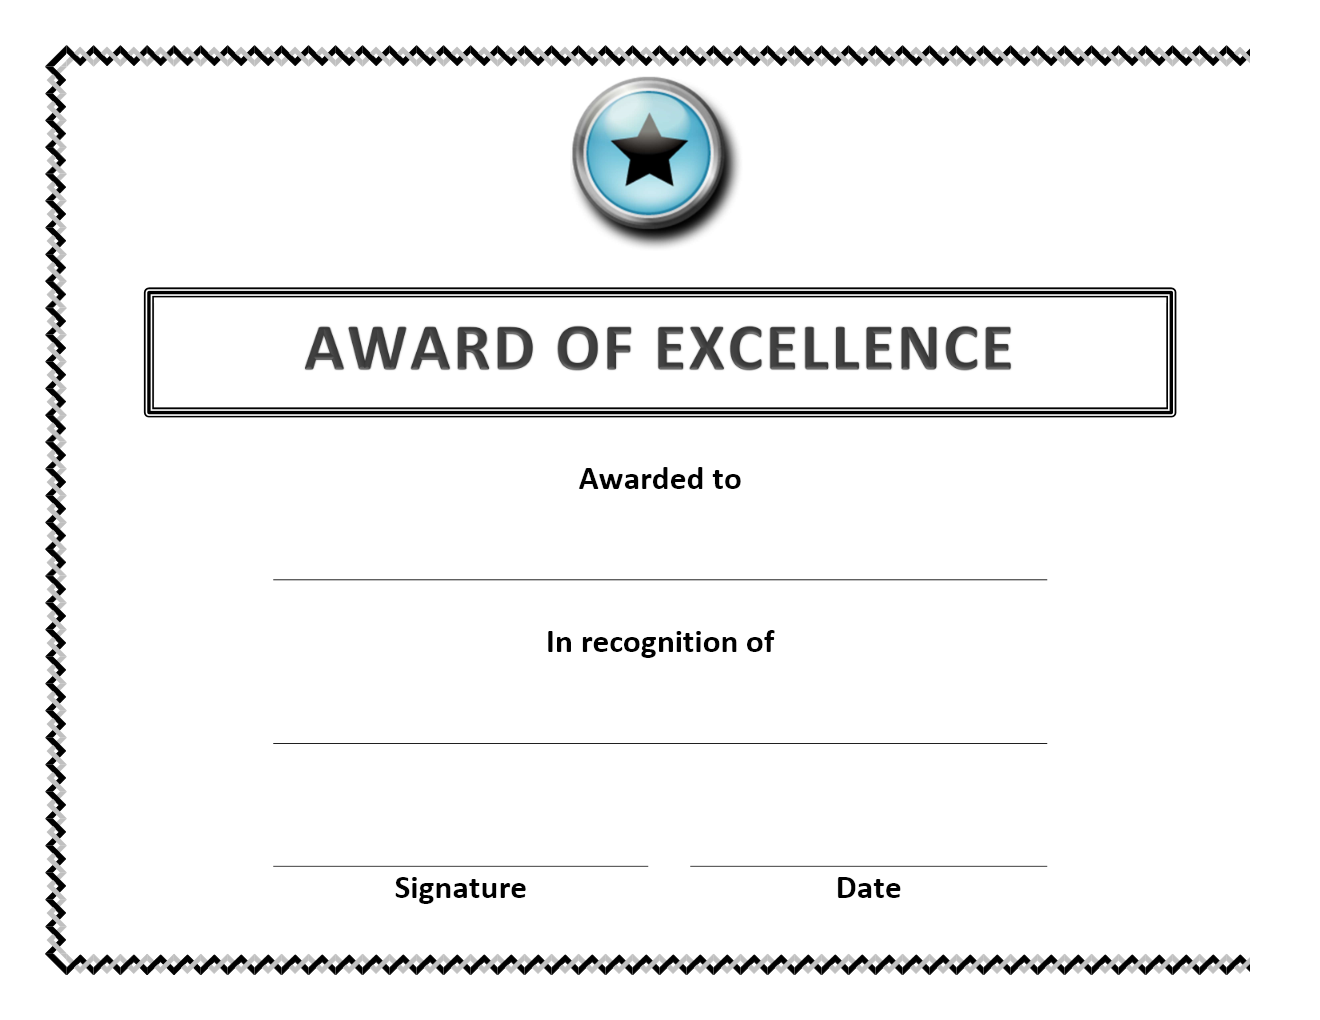 Award Certificate Template Archives Freewordtemplates